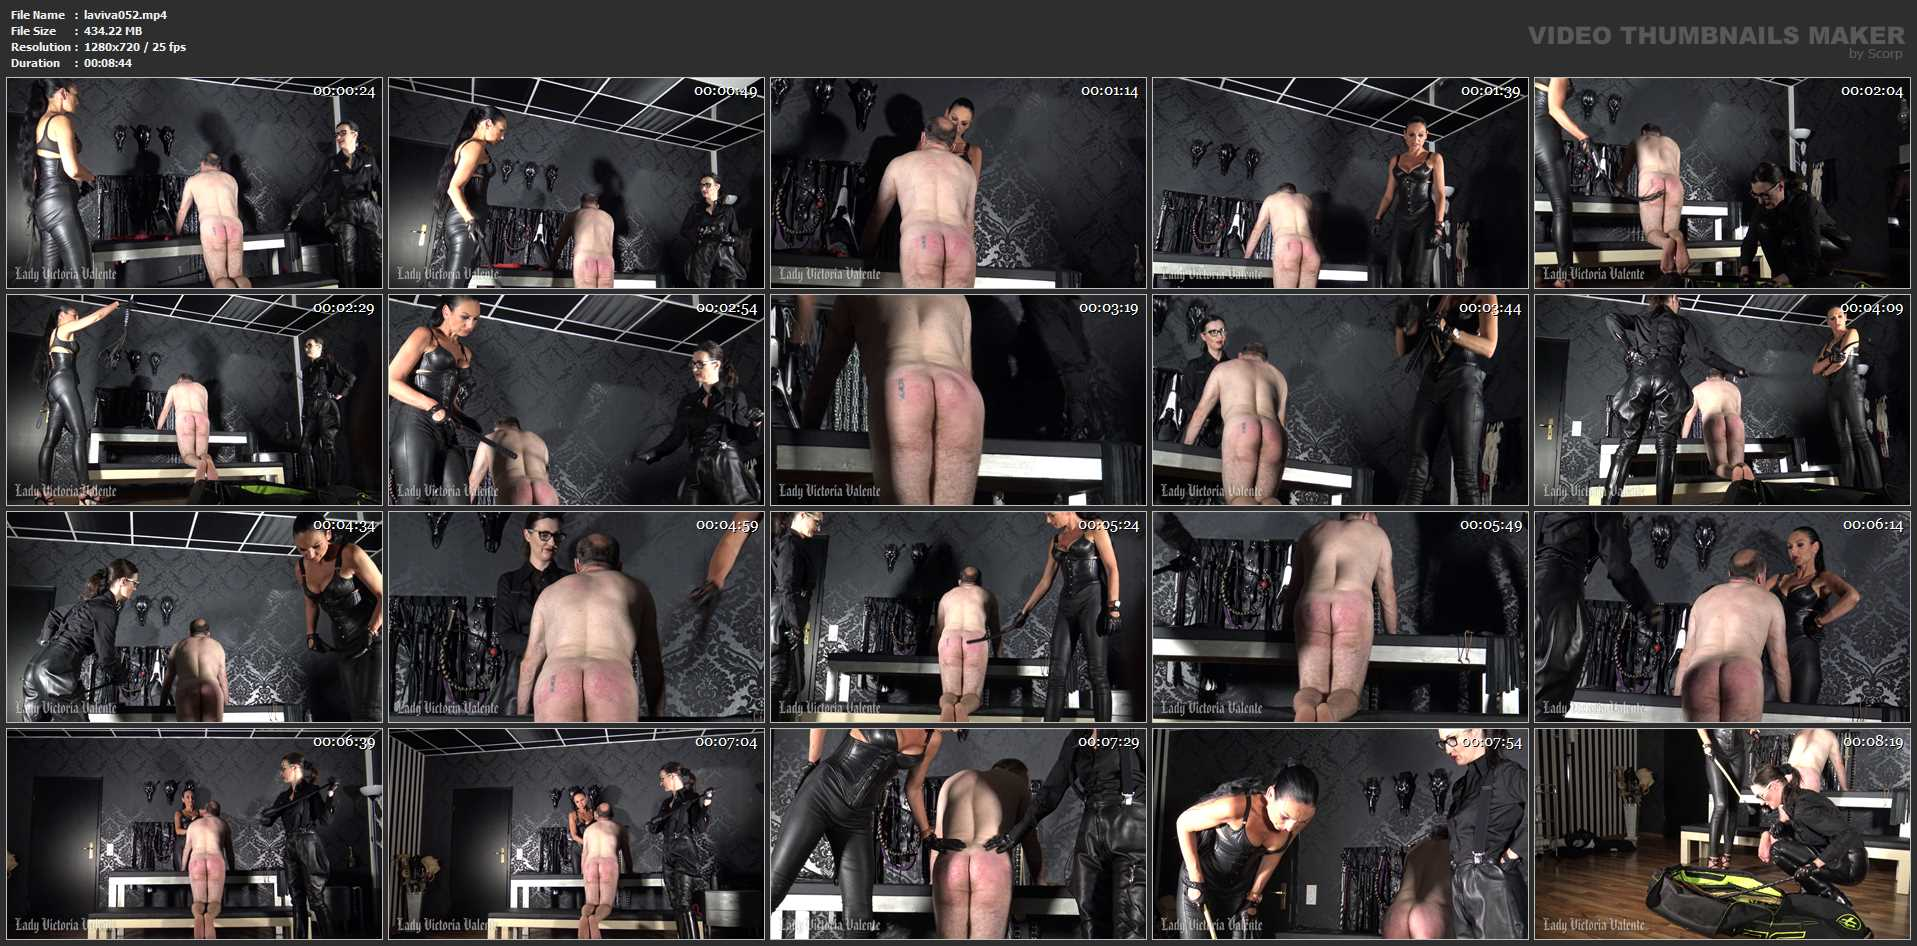 Lady Victoria Valente In Scene: The whip seller Part 2 - CLIPS4SALE / LADYVICTORIAVALENTE - HD/720p/MP4